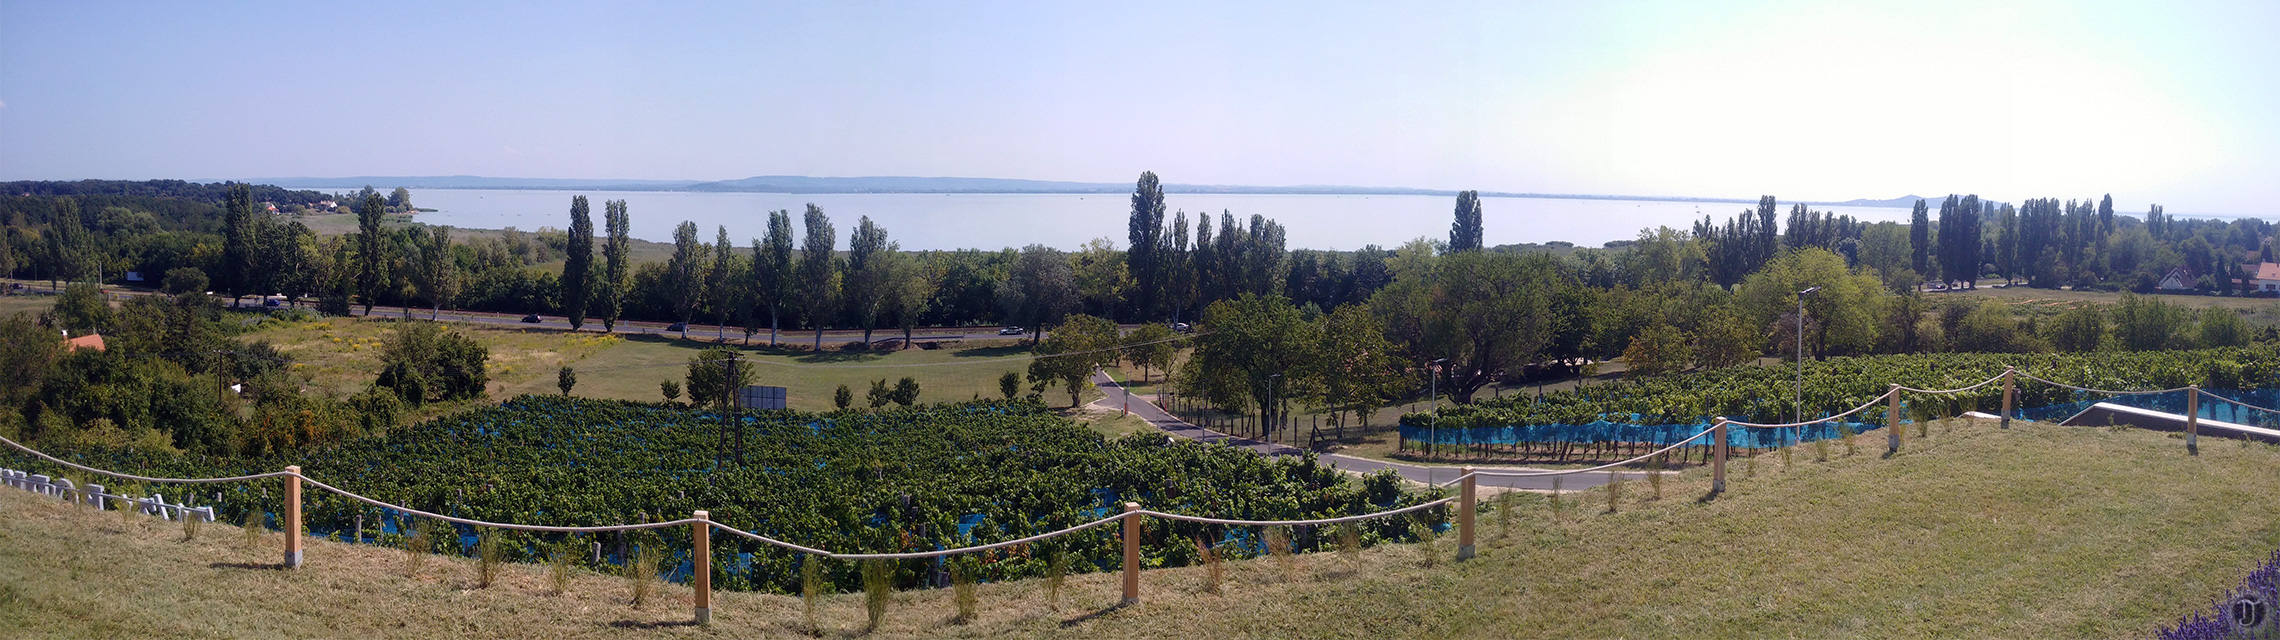 Lake Balaton Winery - Panorama